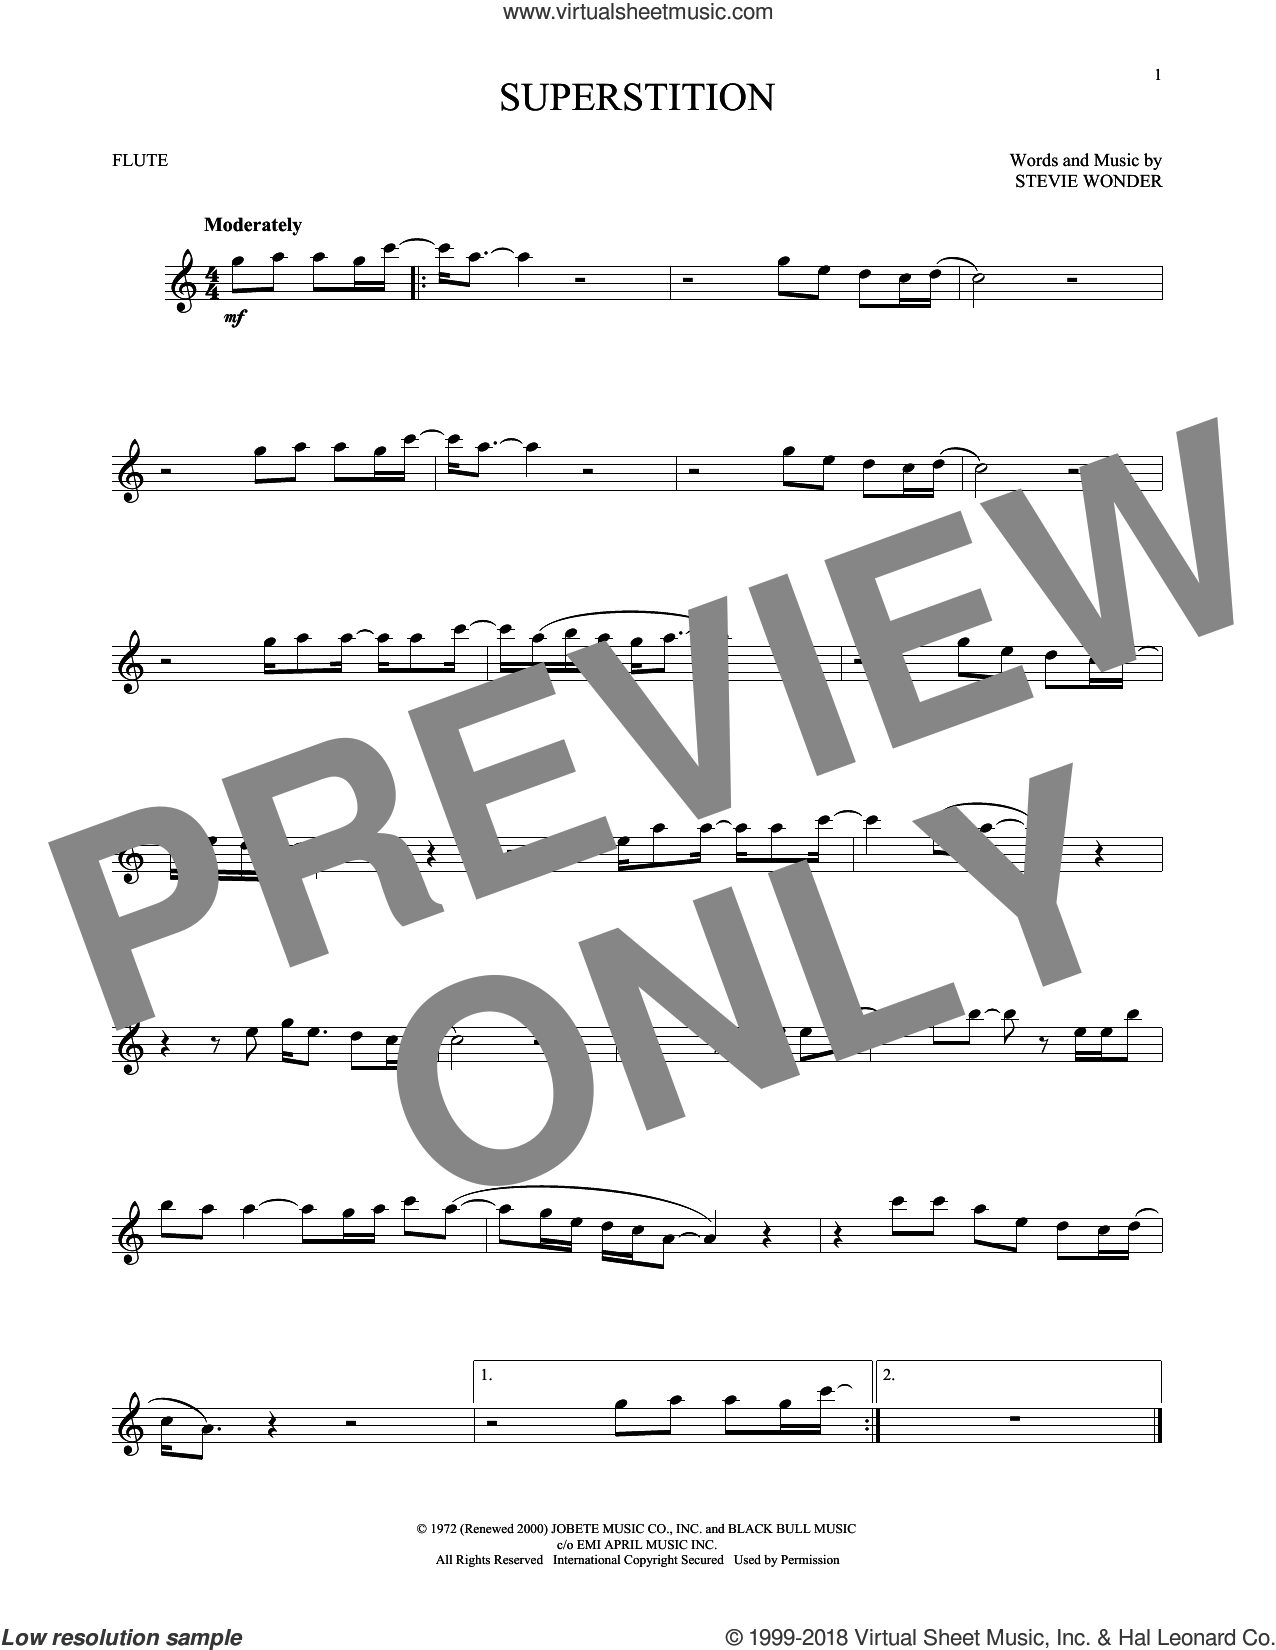 Superstition sheet music for flute solo by Stevie Wonder, intermediate skill level